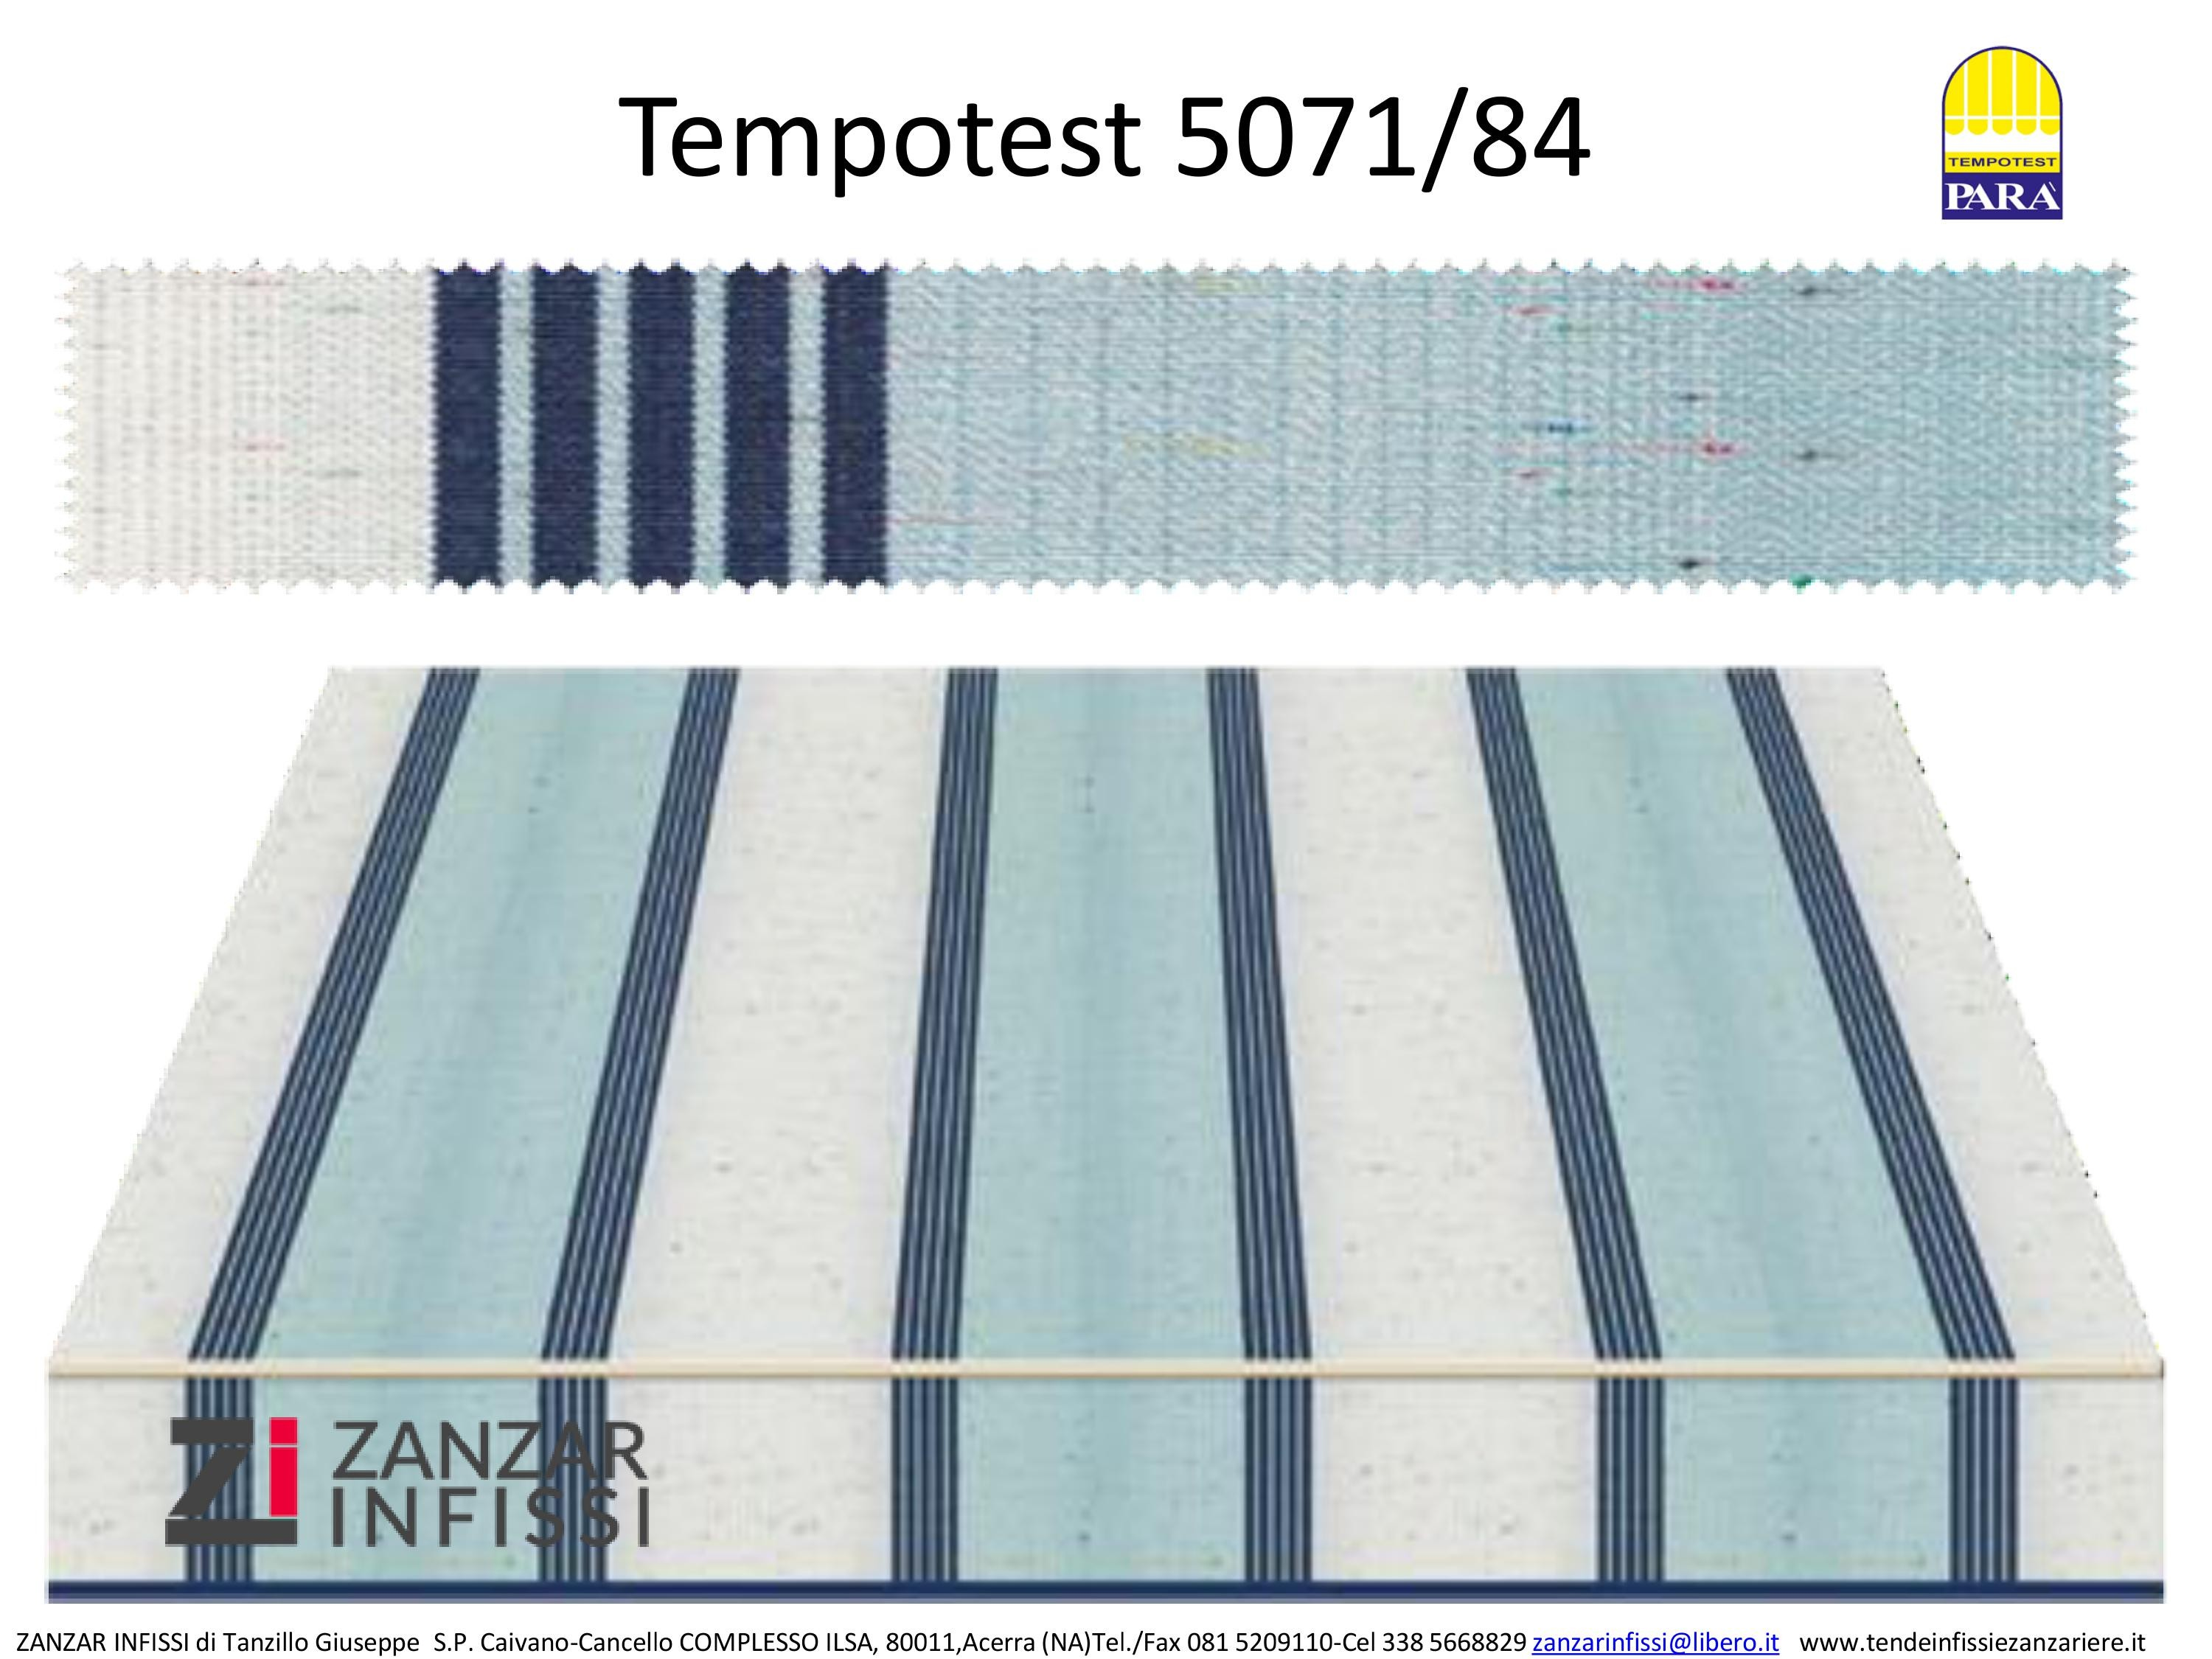 Tempotest 5071/84